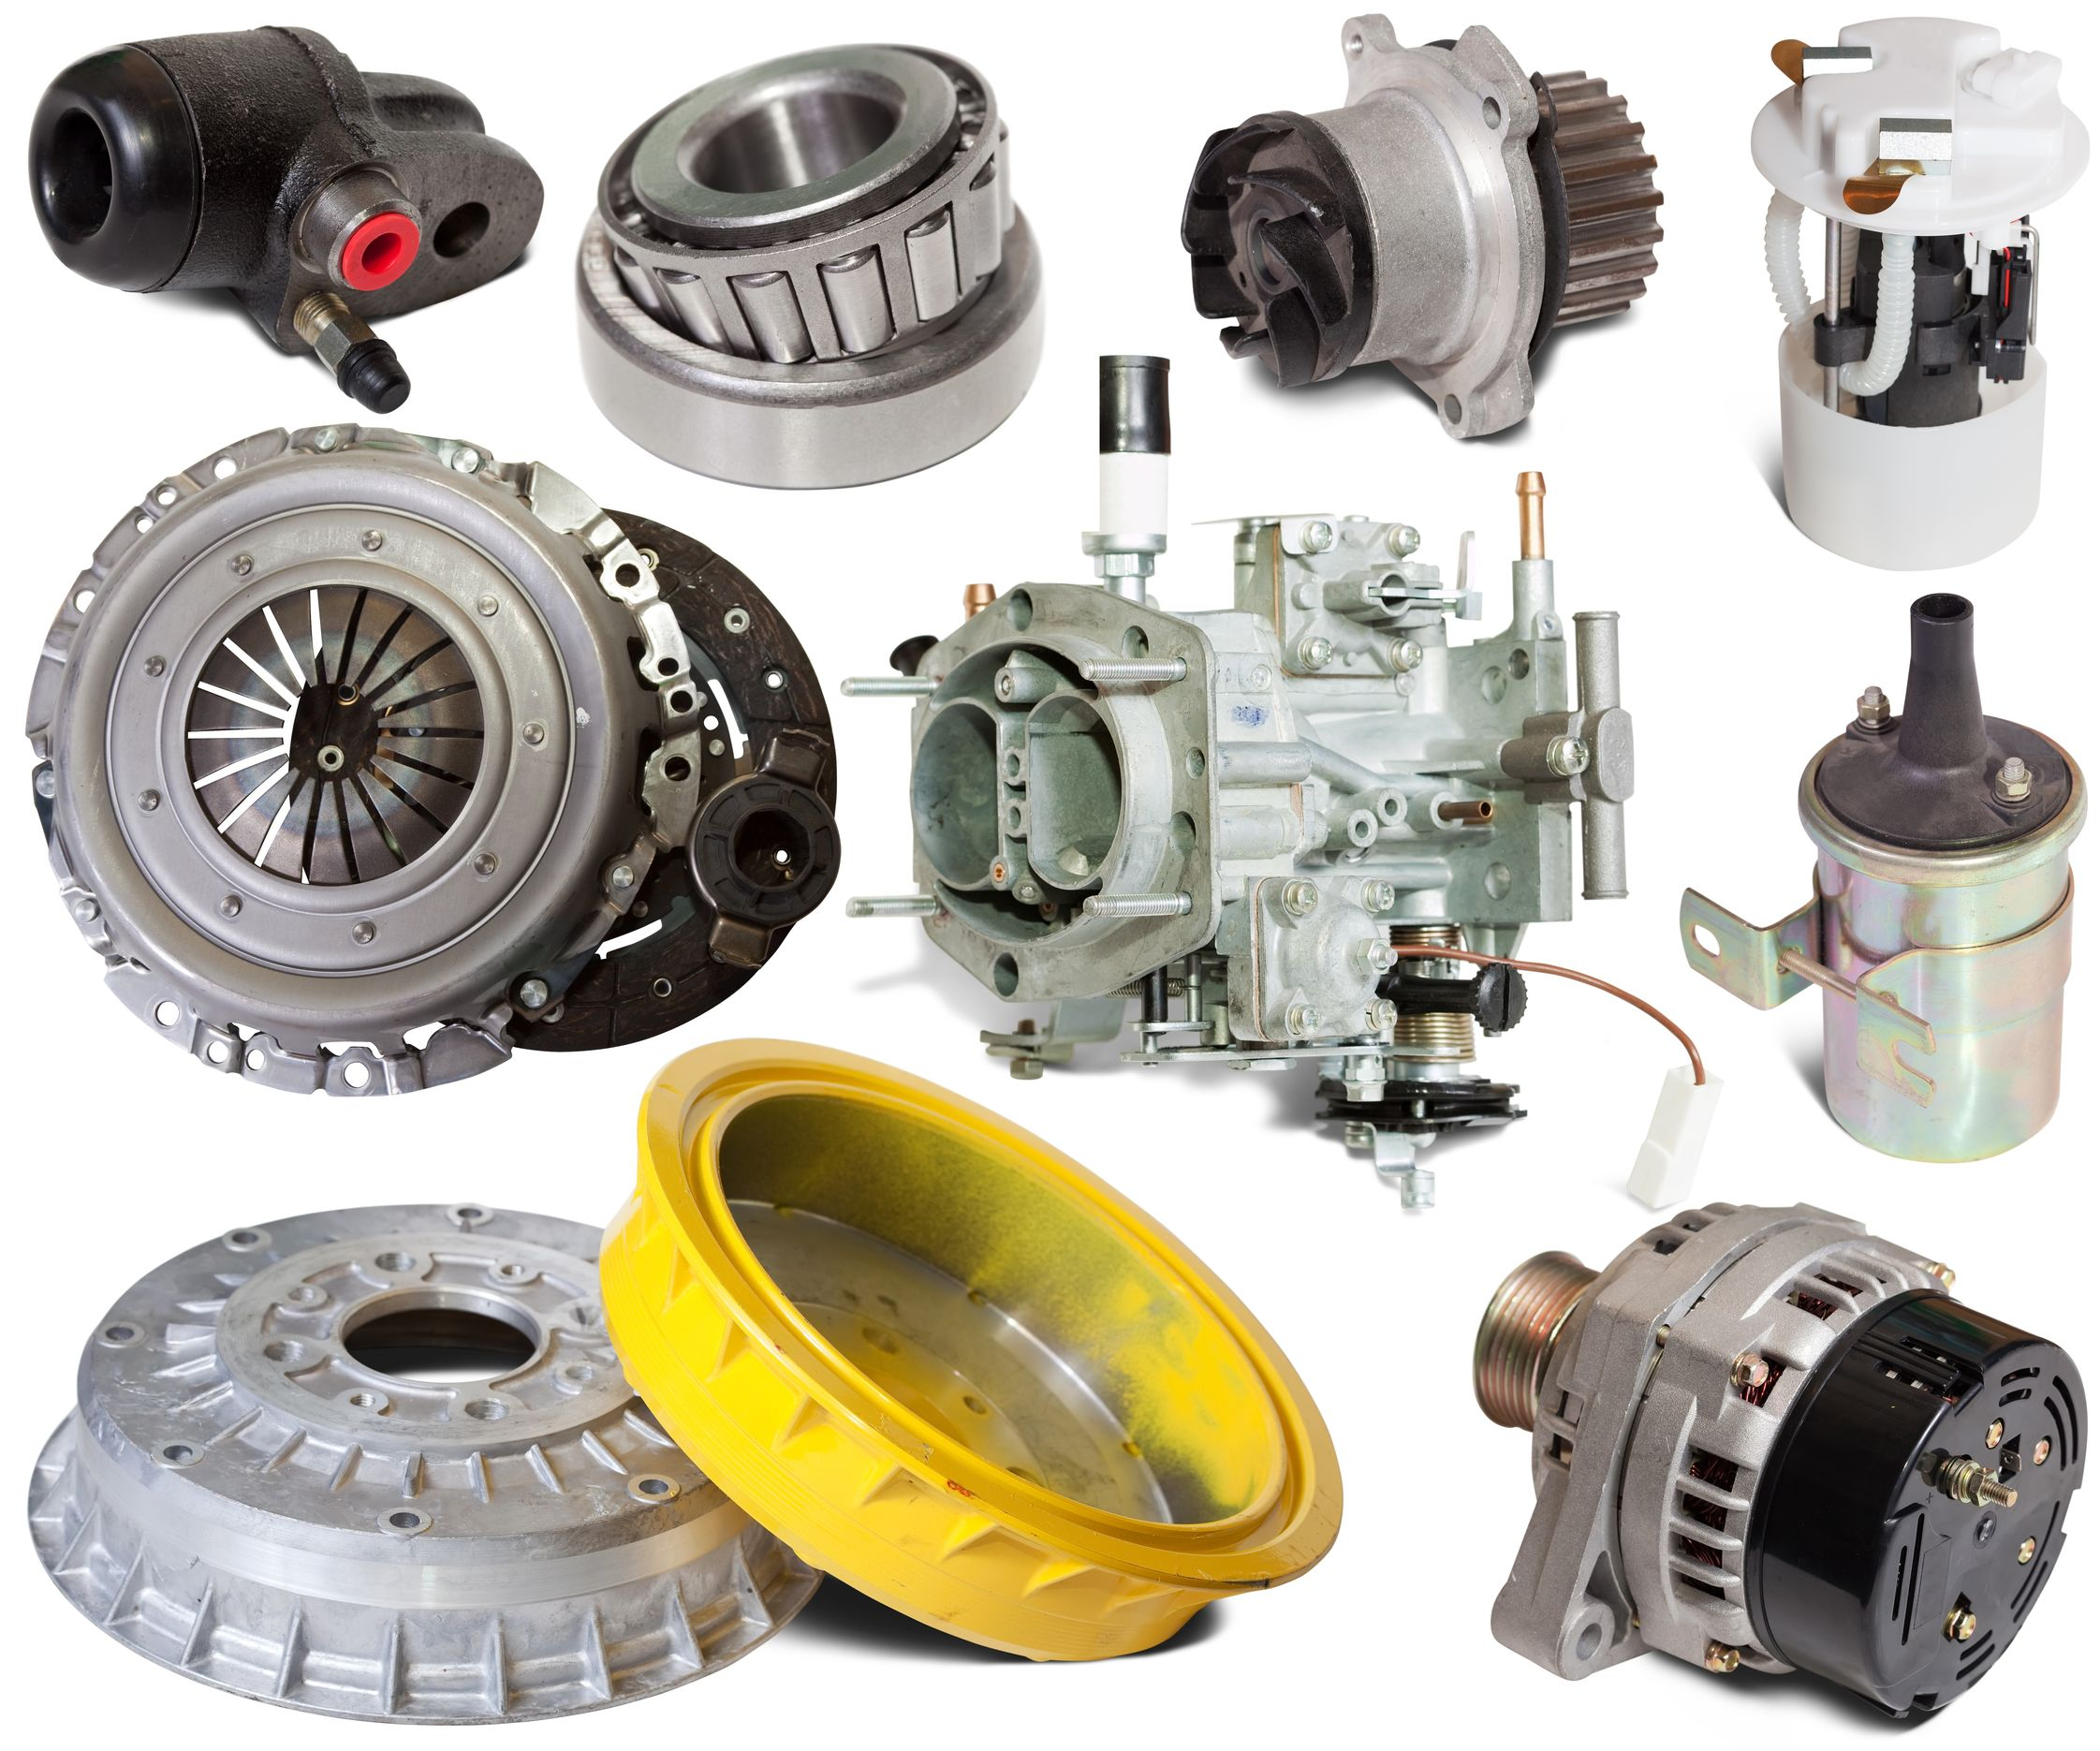 Canada car parts shop online